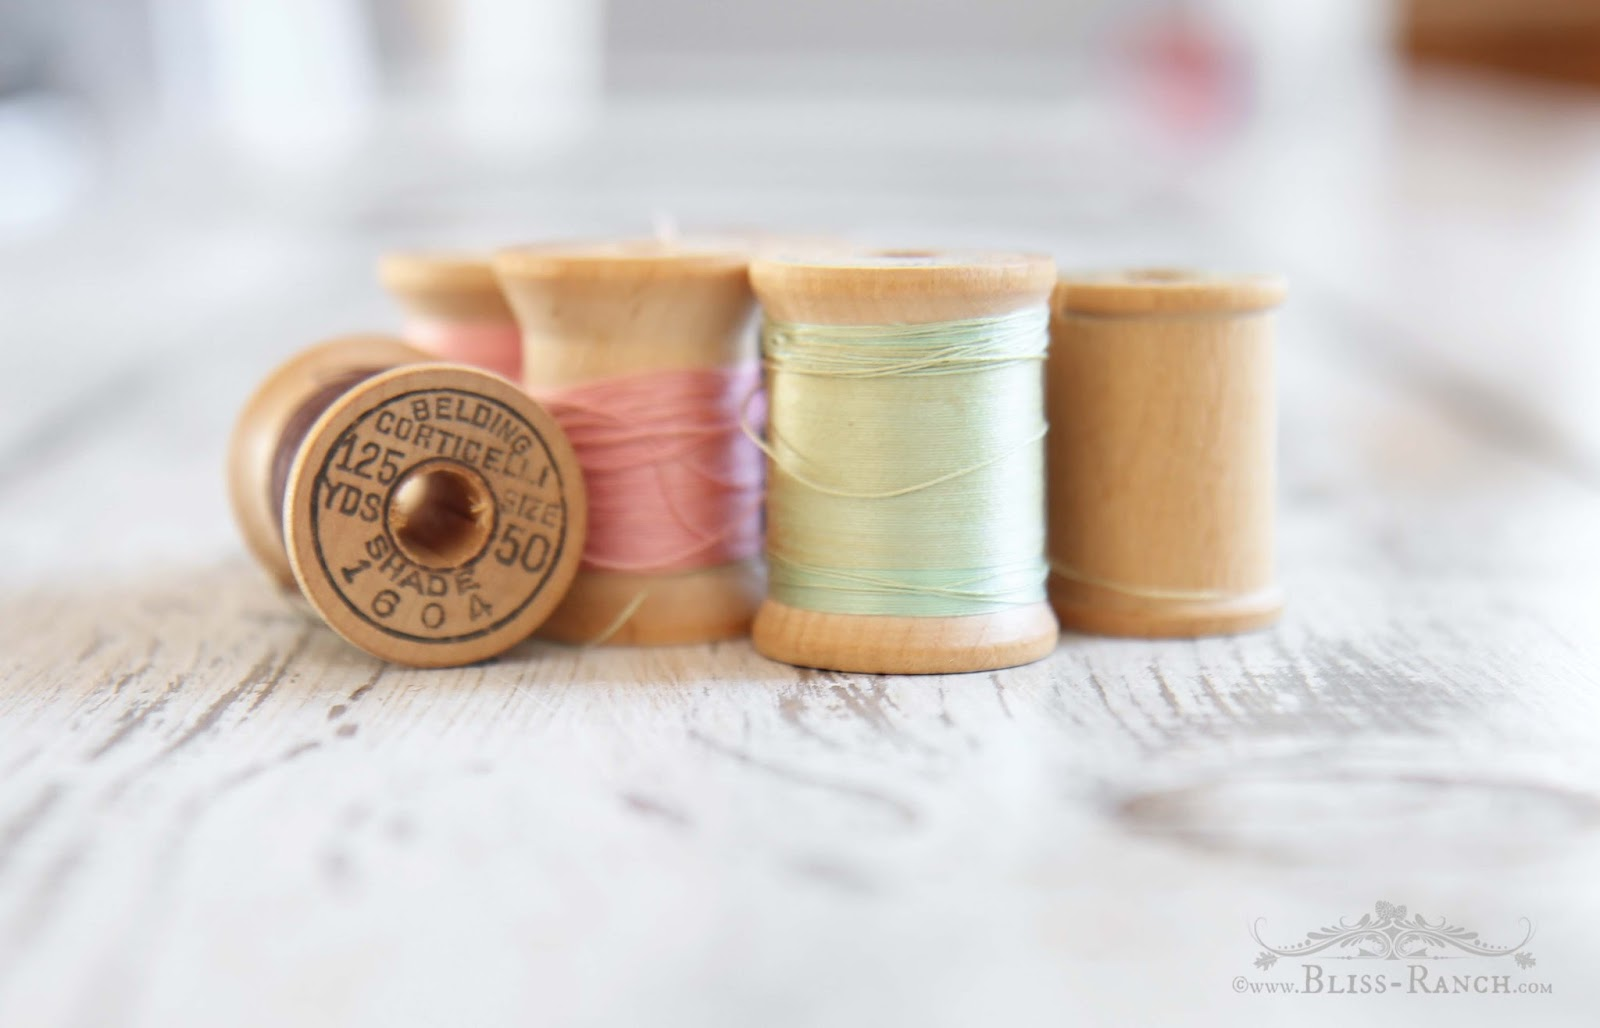 Vintage Thread spools Bliss-Ranch.com